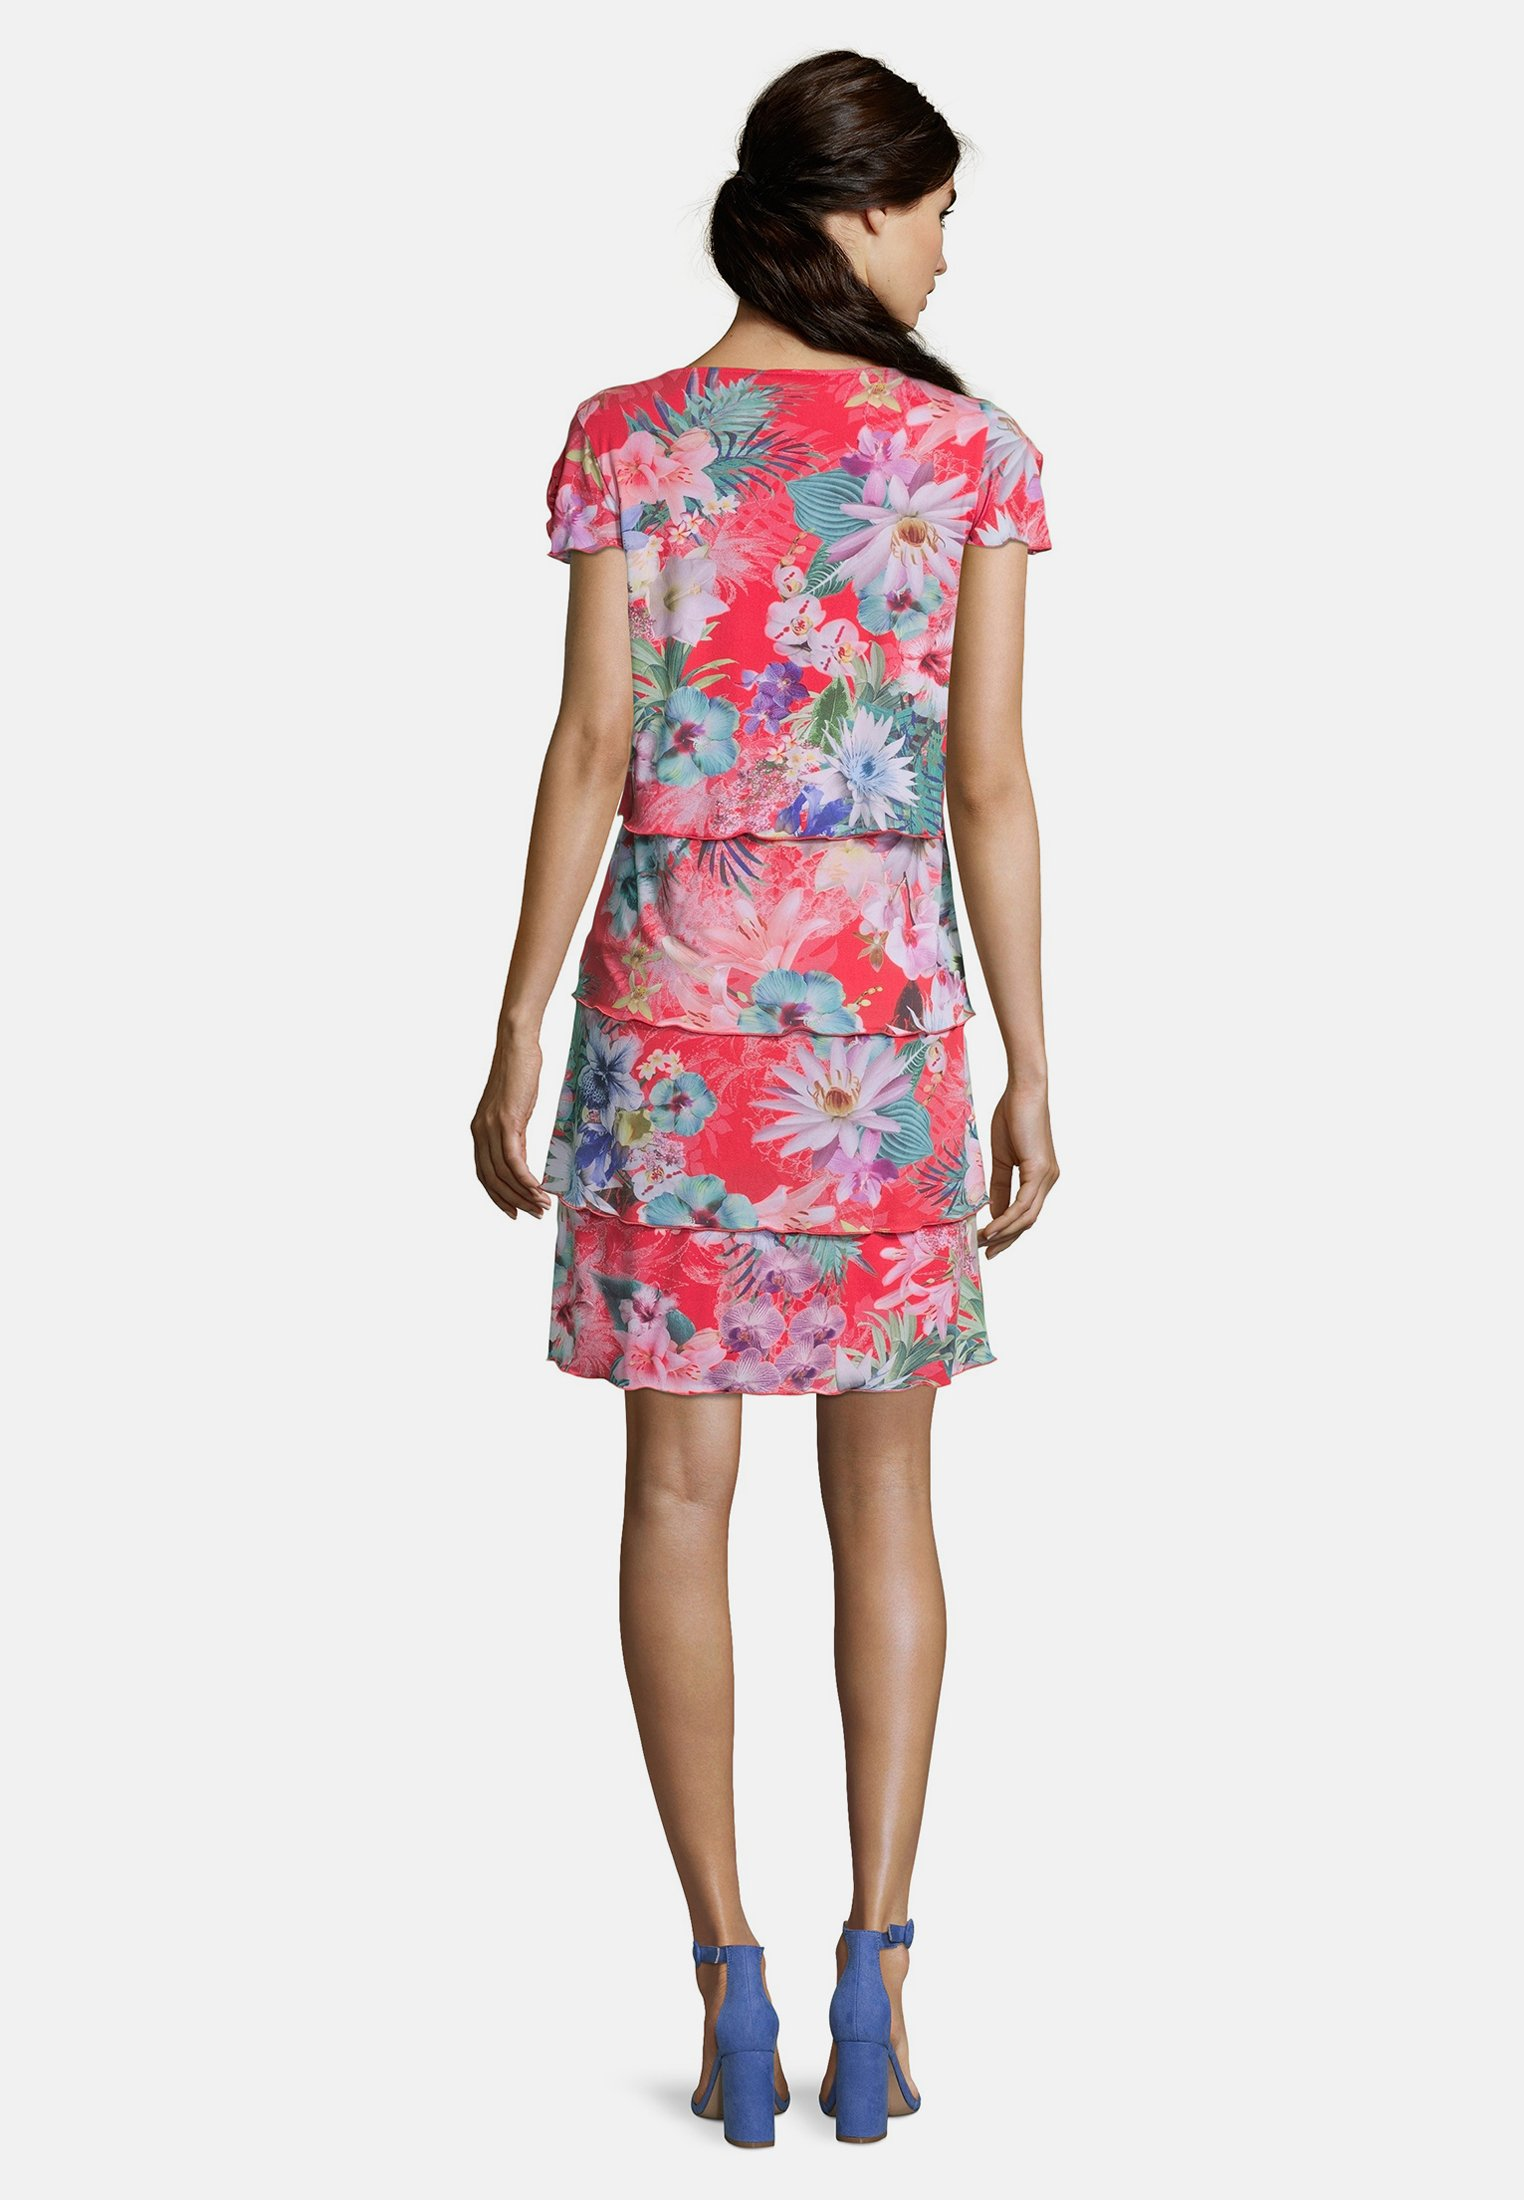 Betty Barclay Freizeitkleid pink/dark blue/pink